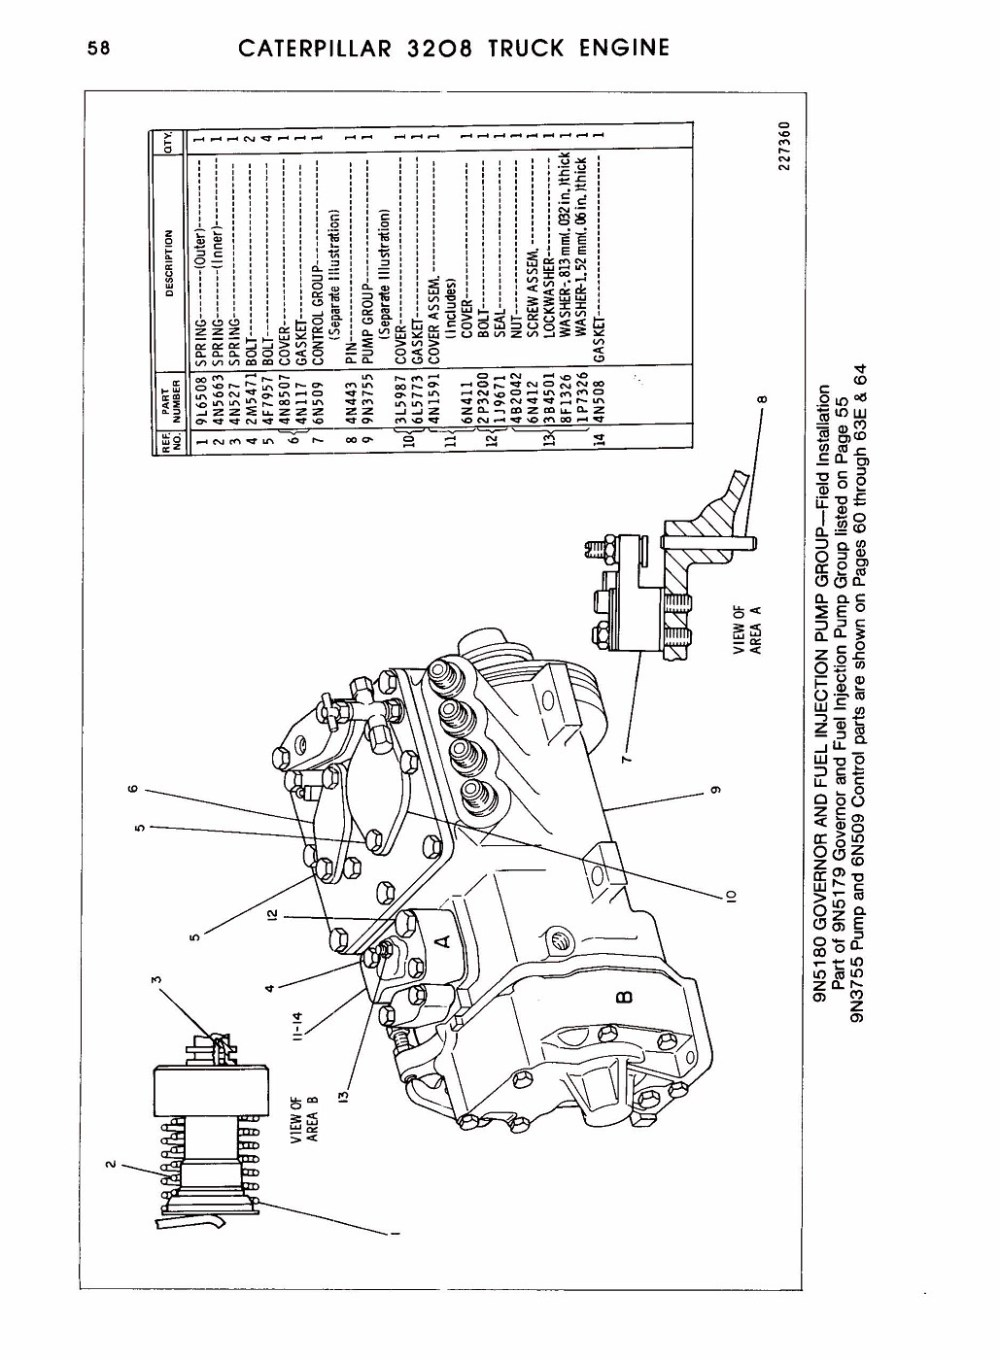 medium resolution of parts manual cat 3208 wiring numbers caterpillar 3208 caterpillar 3208 alternator wiring diagram caterpillar 3208 engine pdf caterpillar 3208 parts diagram